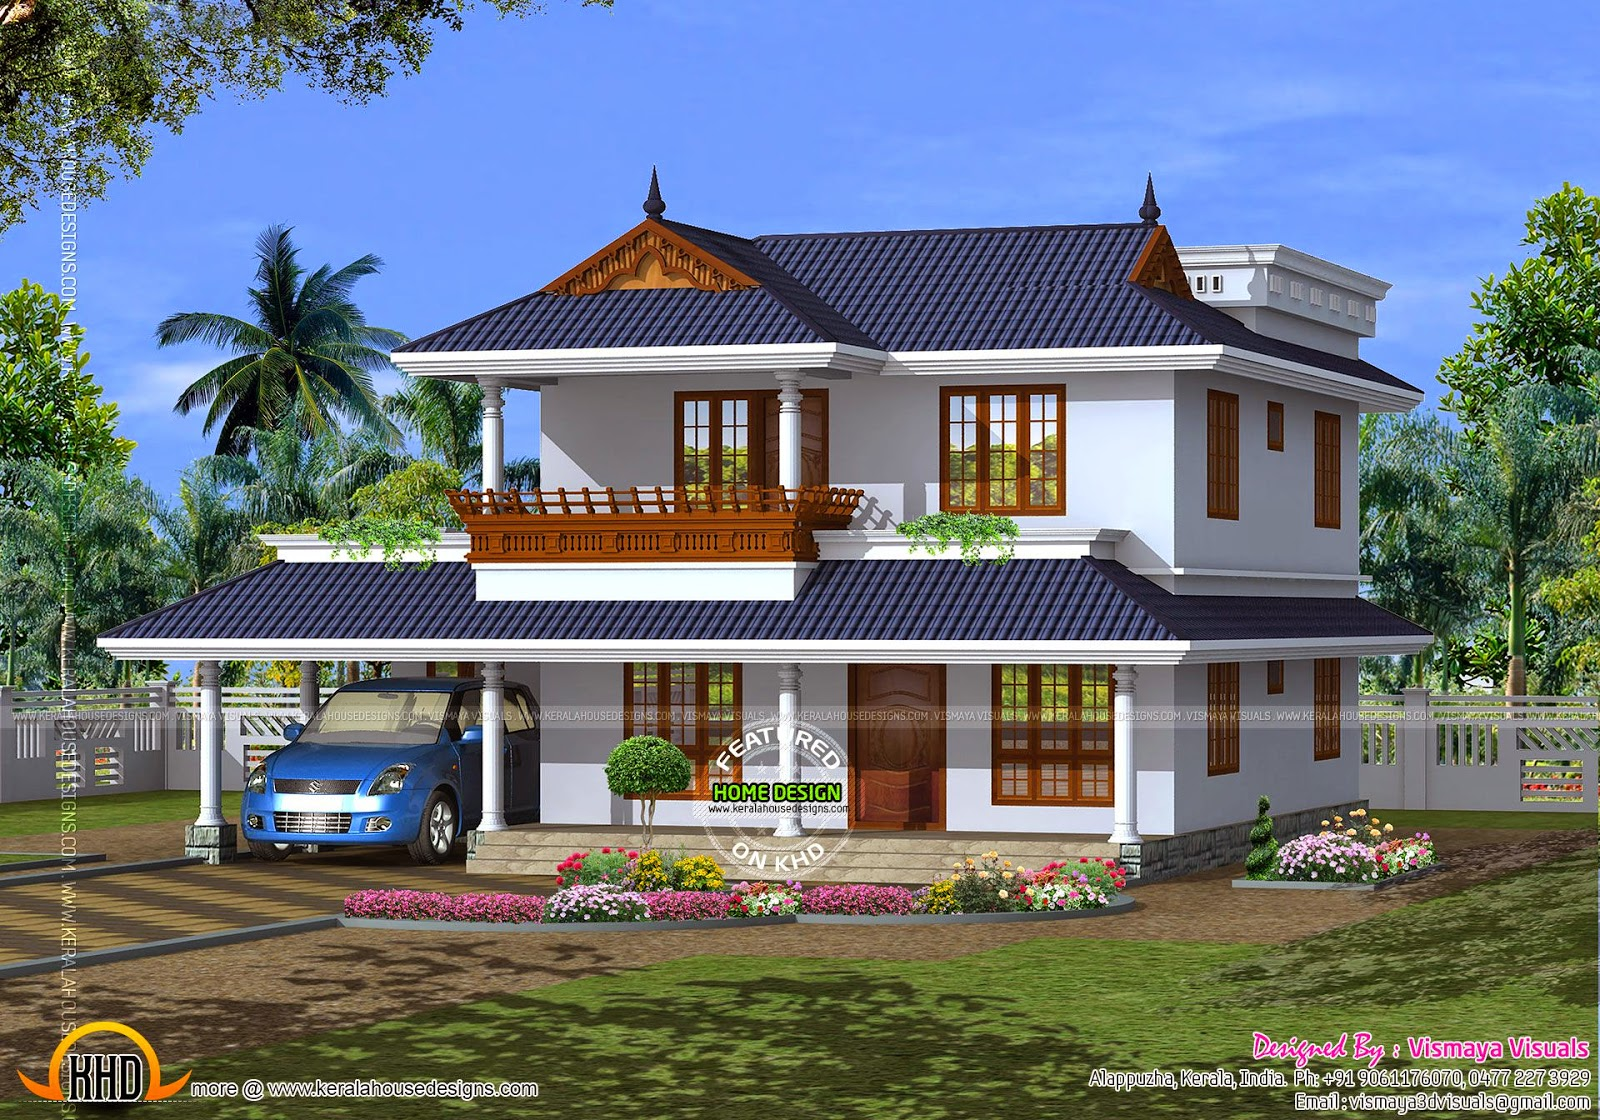 Home model Kerala. House model Kerala   Kerala home design and floor plans